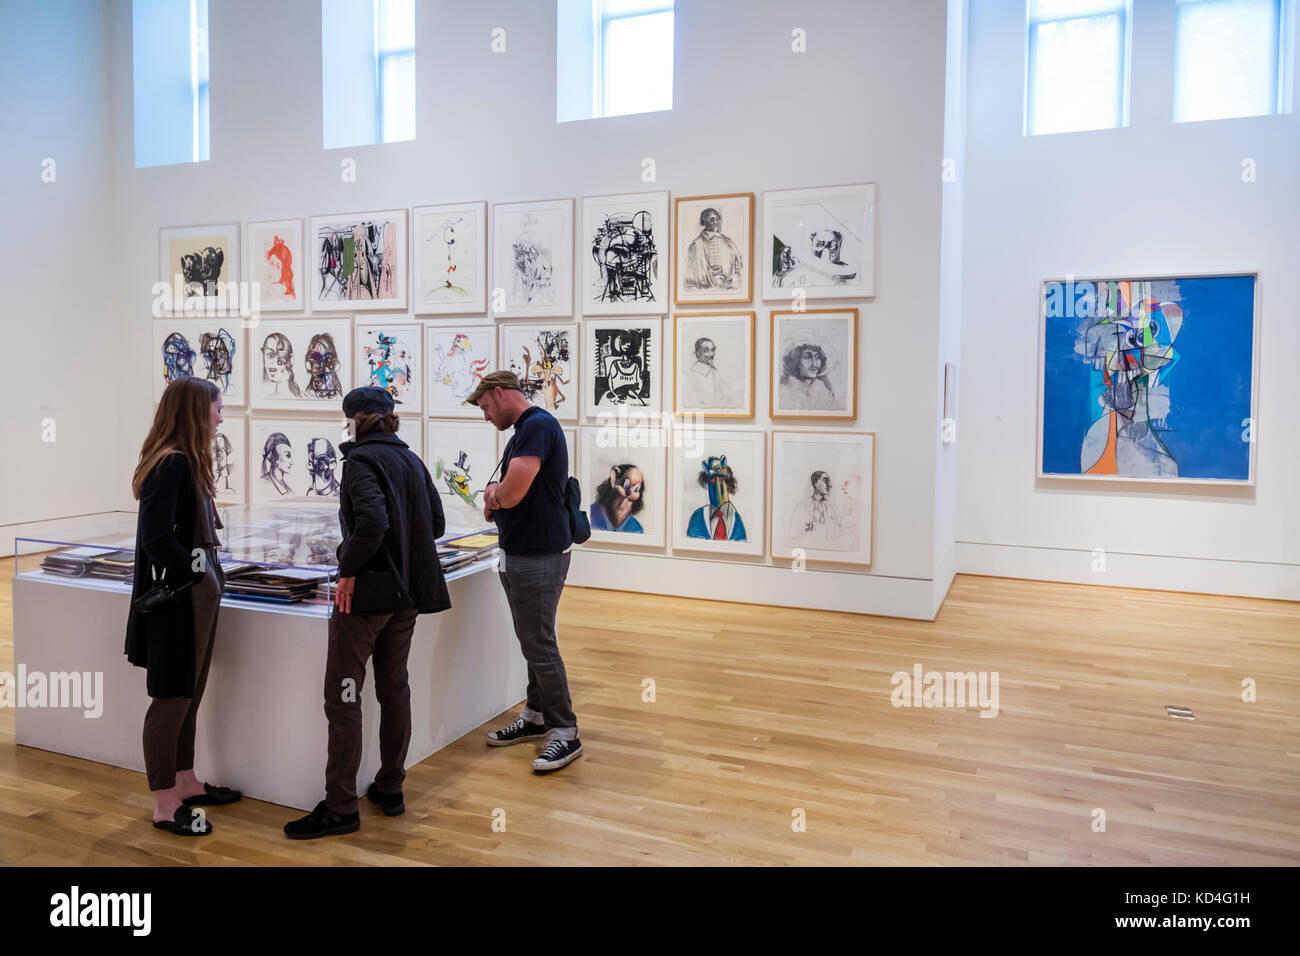 Washington DC District of Columbia Phillips Collection art museum George Condo drawings paintings exhibition viewing - Stock Image